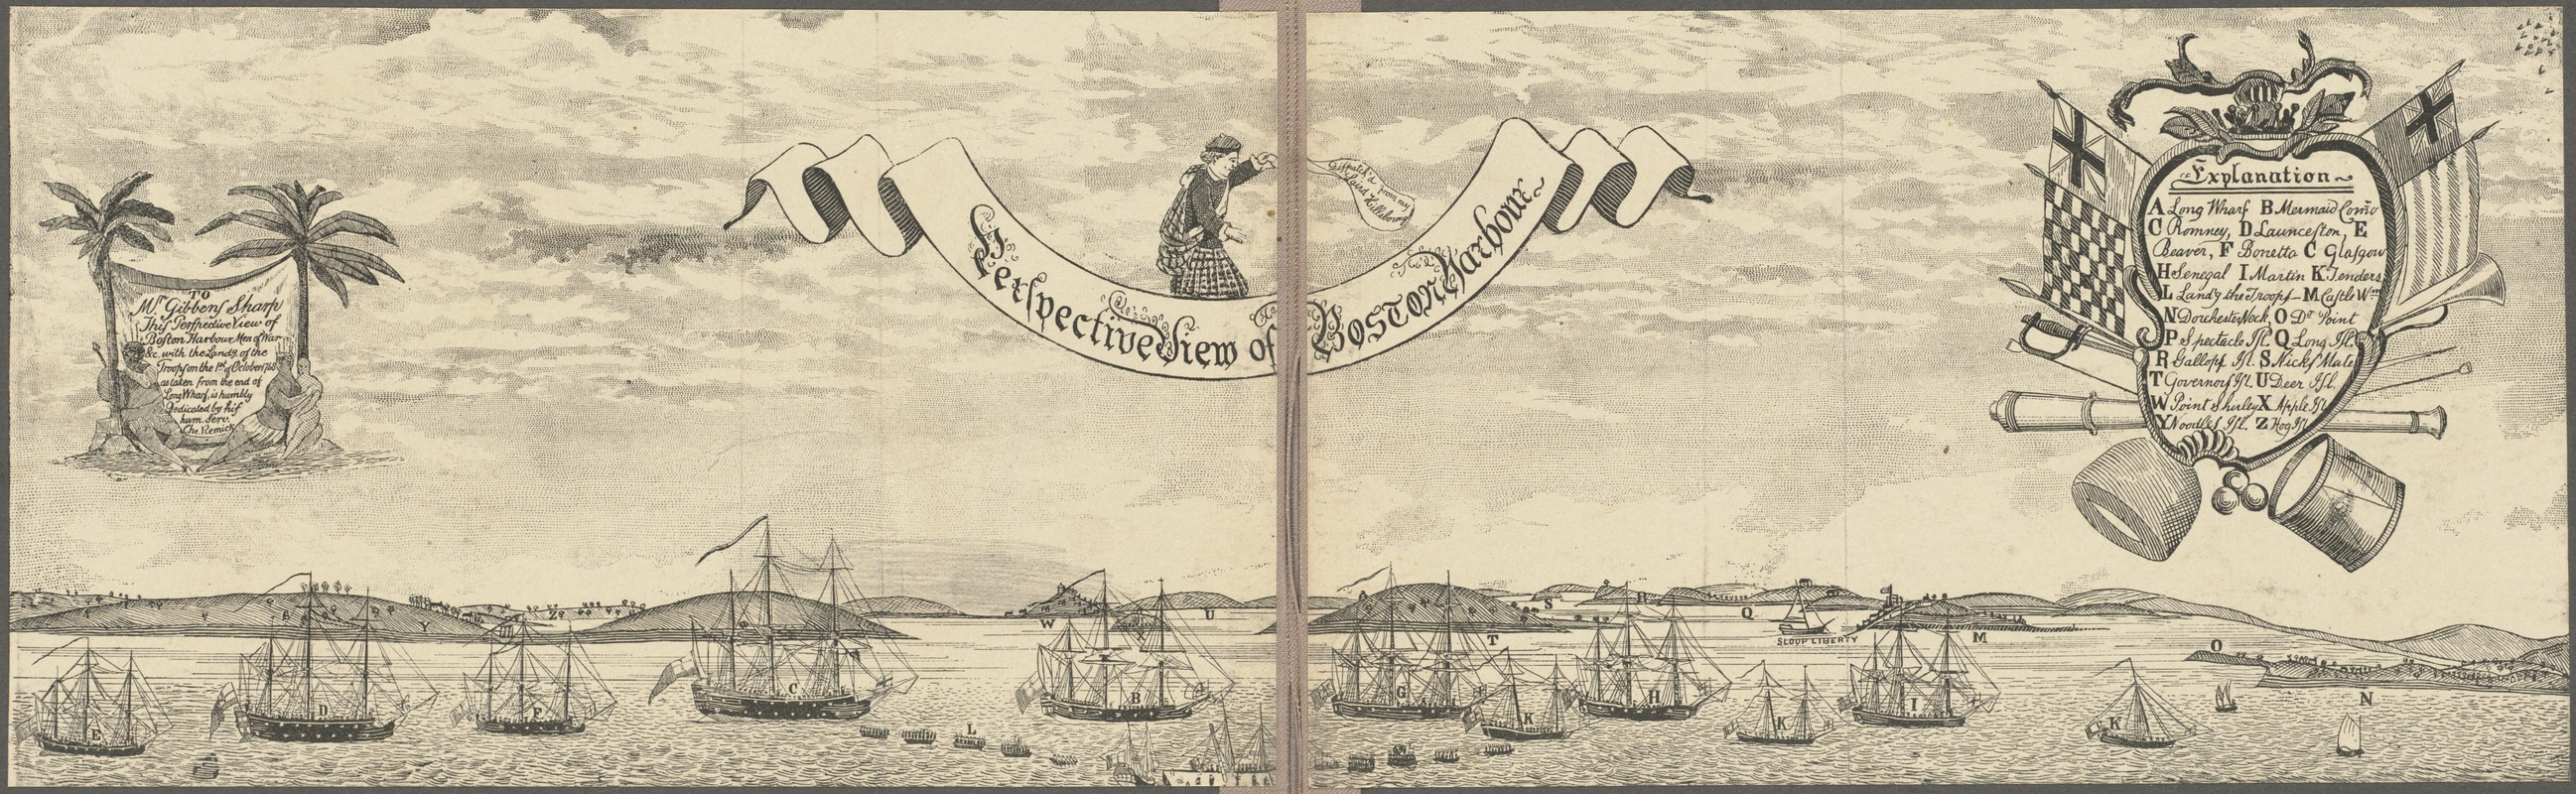 View of Boston Harbor and the British fleet, 1768